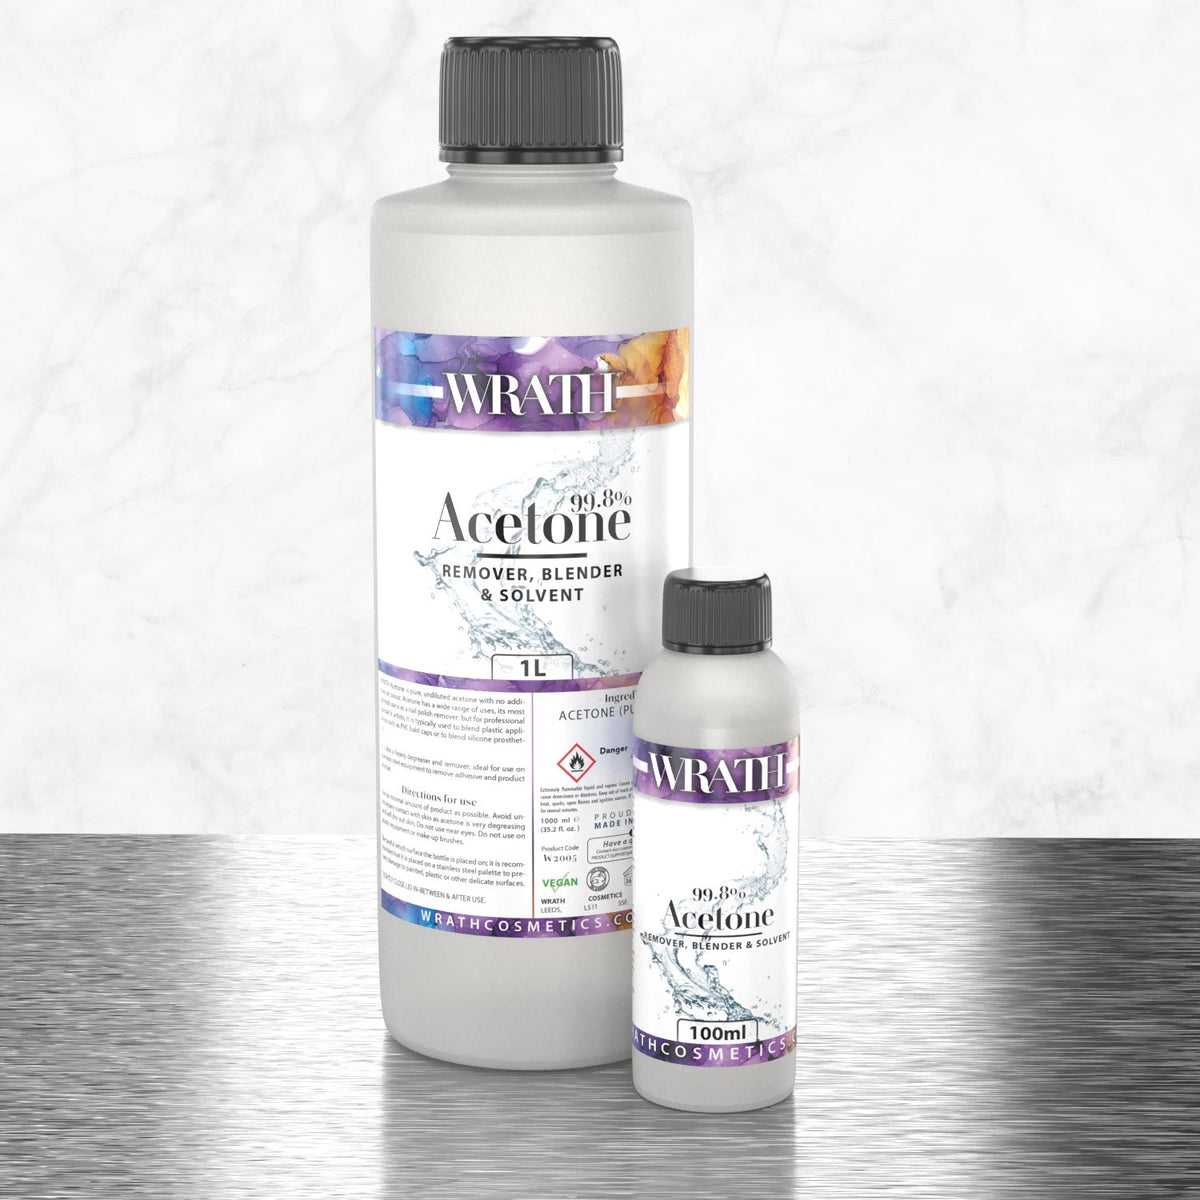 WRATH Pure Acetone 99.8%